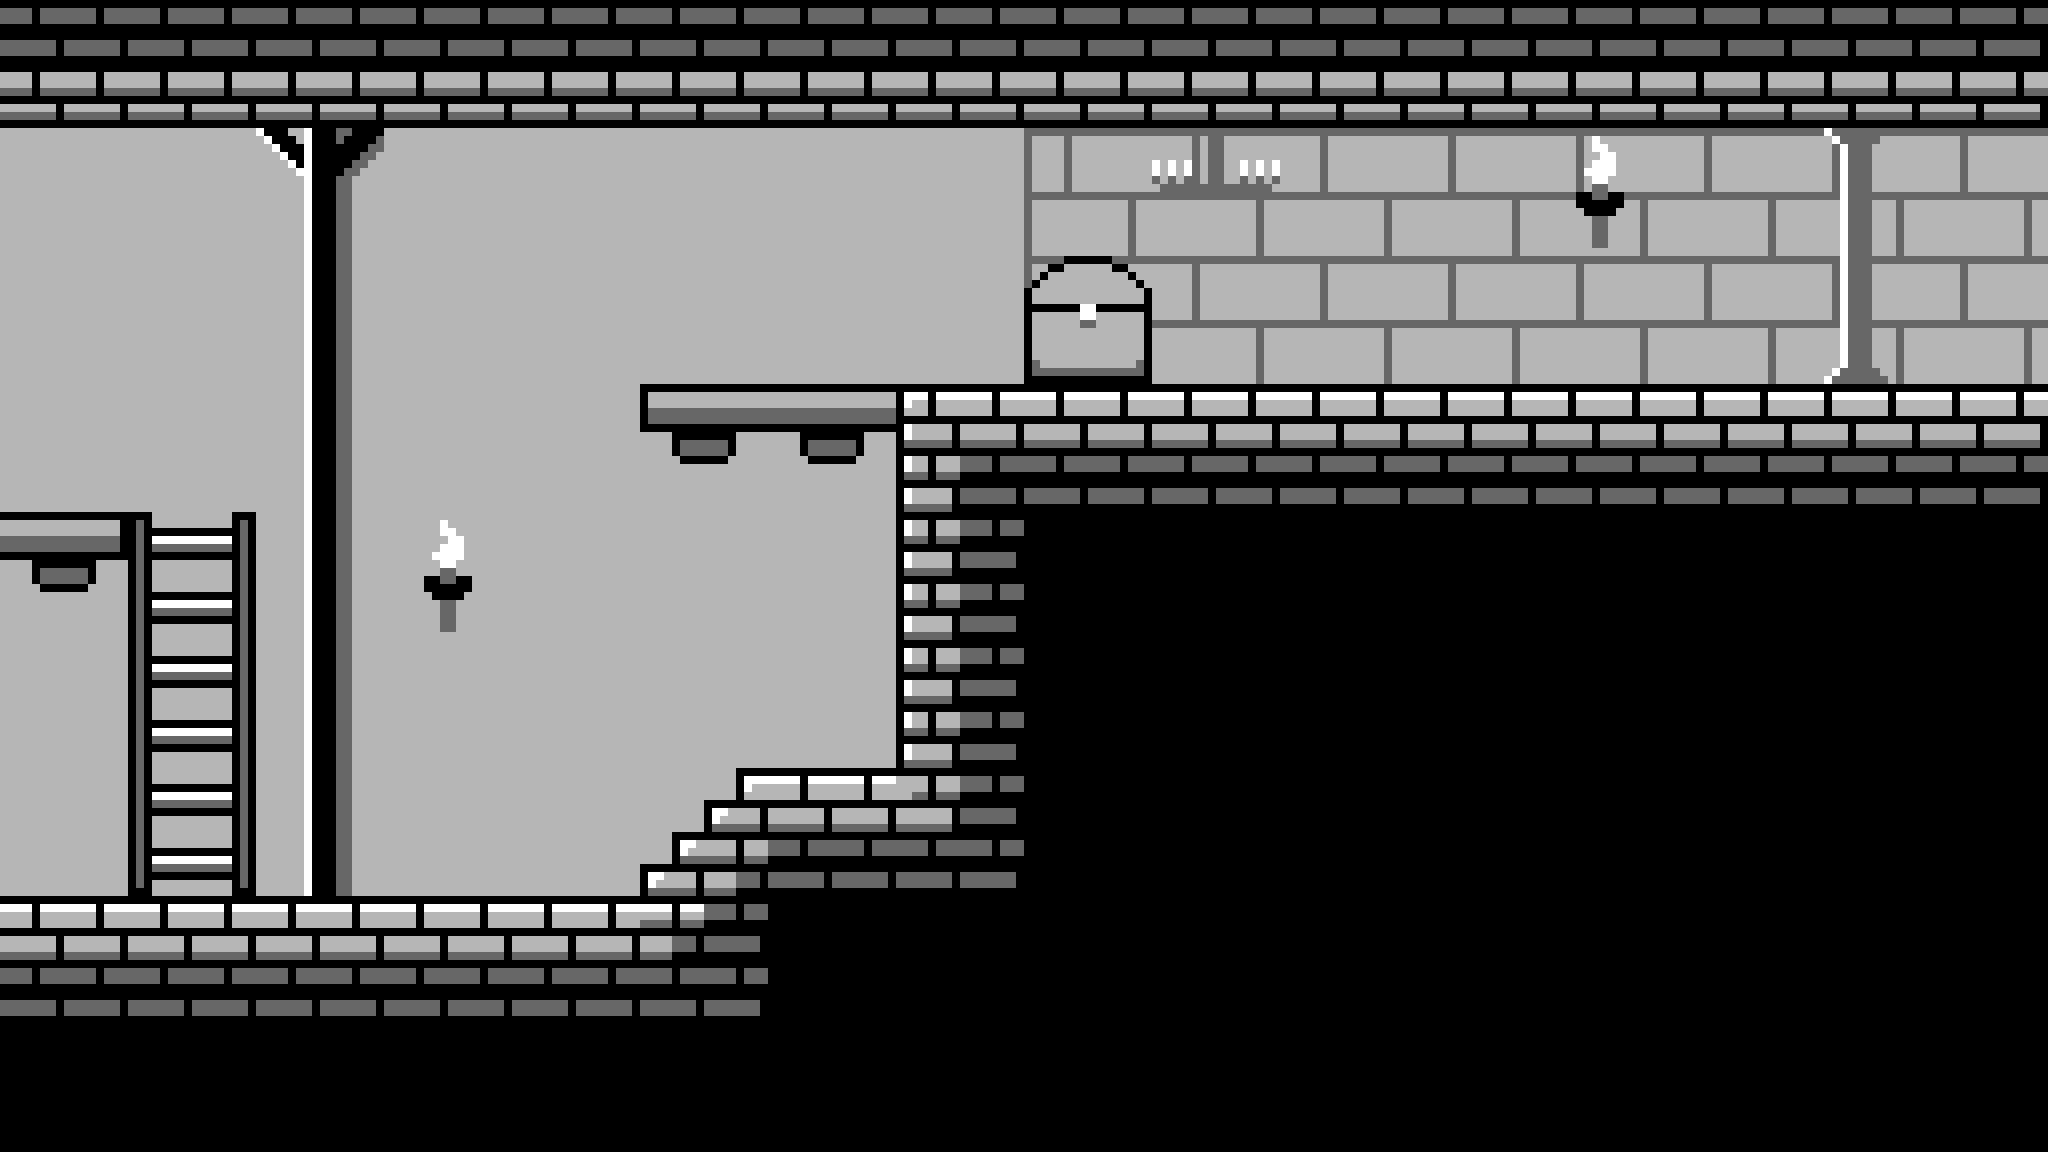 16X16 Tileset gameboy style dungeon tileset - game art partners